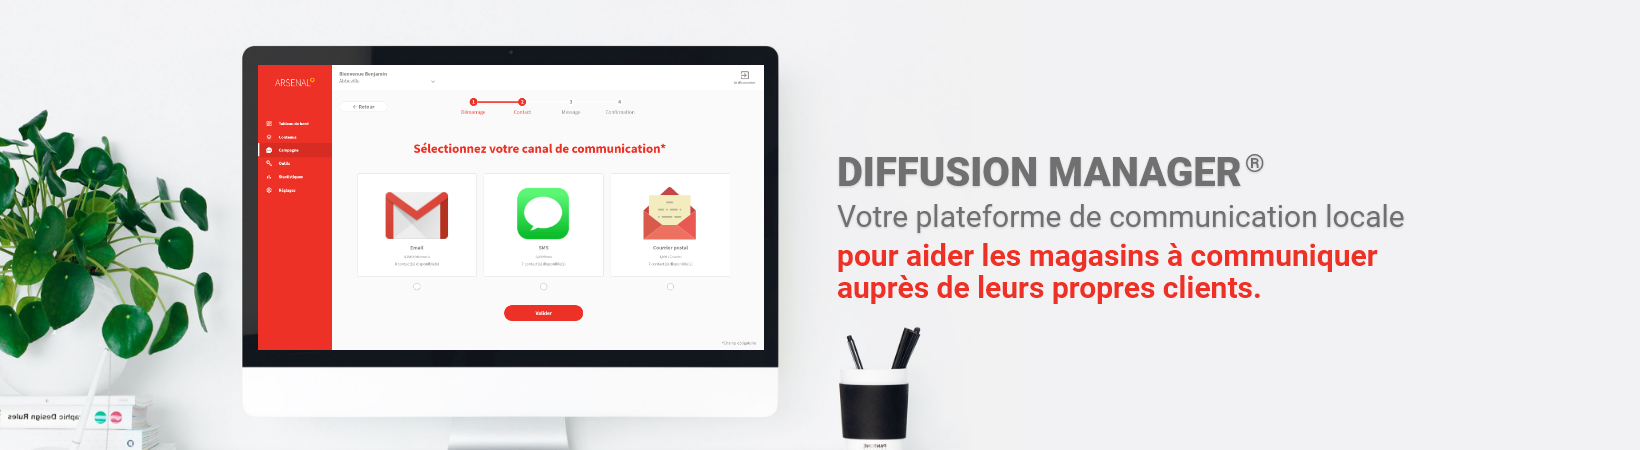 Diffusion Manager